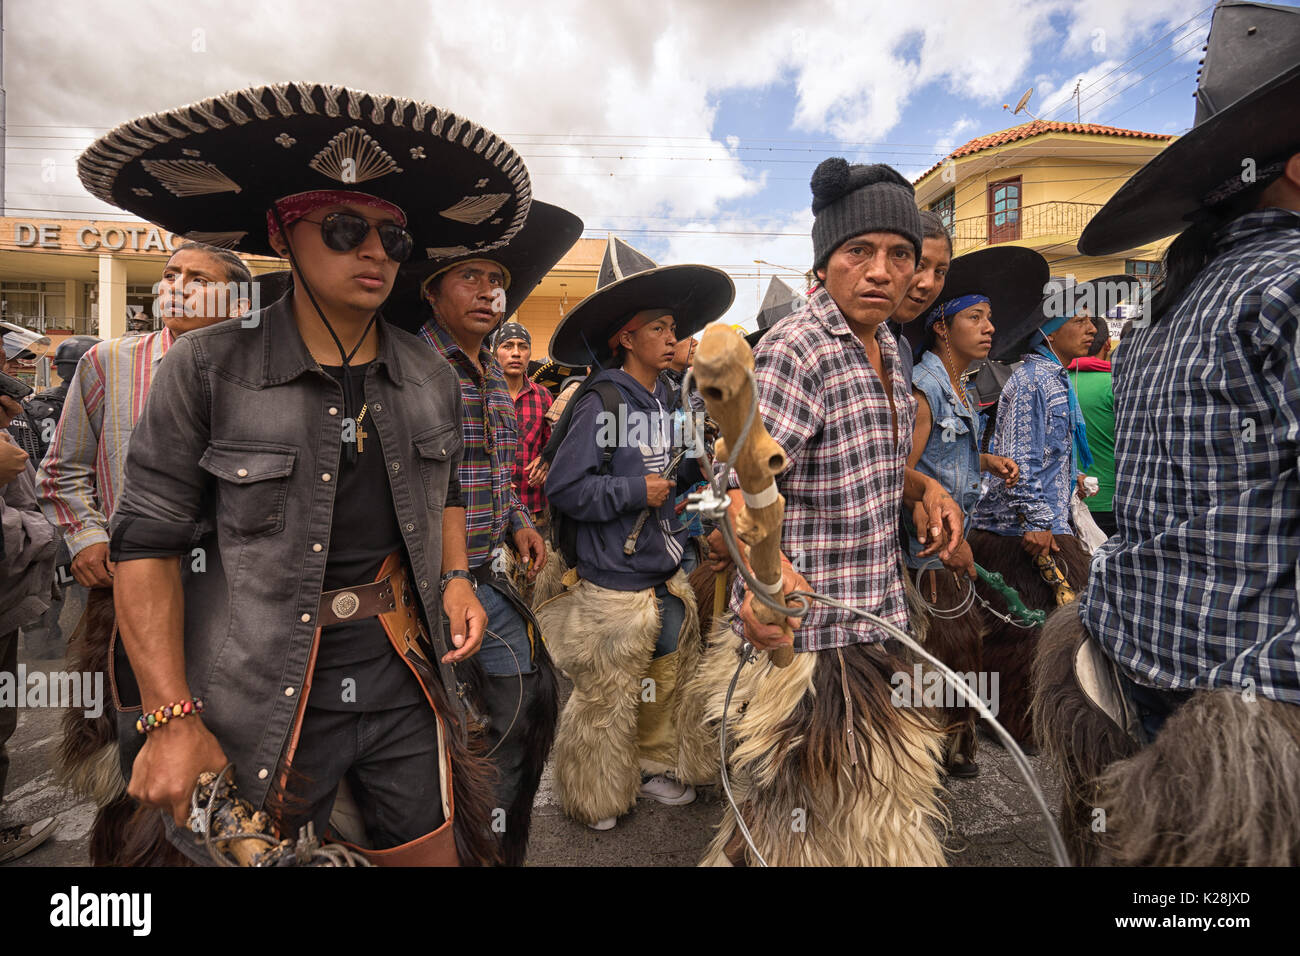 June 25, 2017 Cotacachi, Ecuador: the Inti Raymi parade occassionally turns violent between the participating indigenous groups - Stock Image